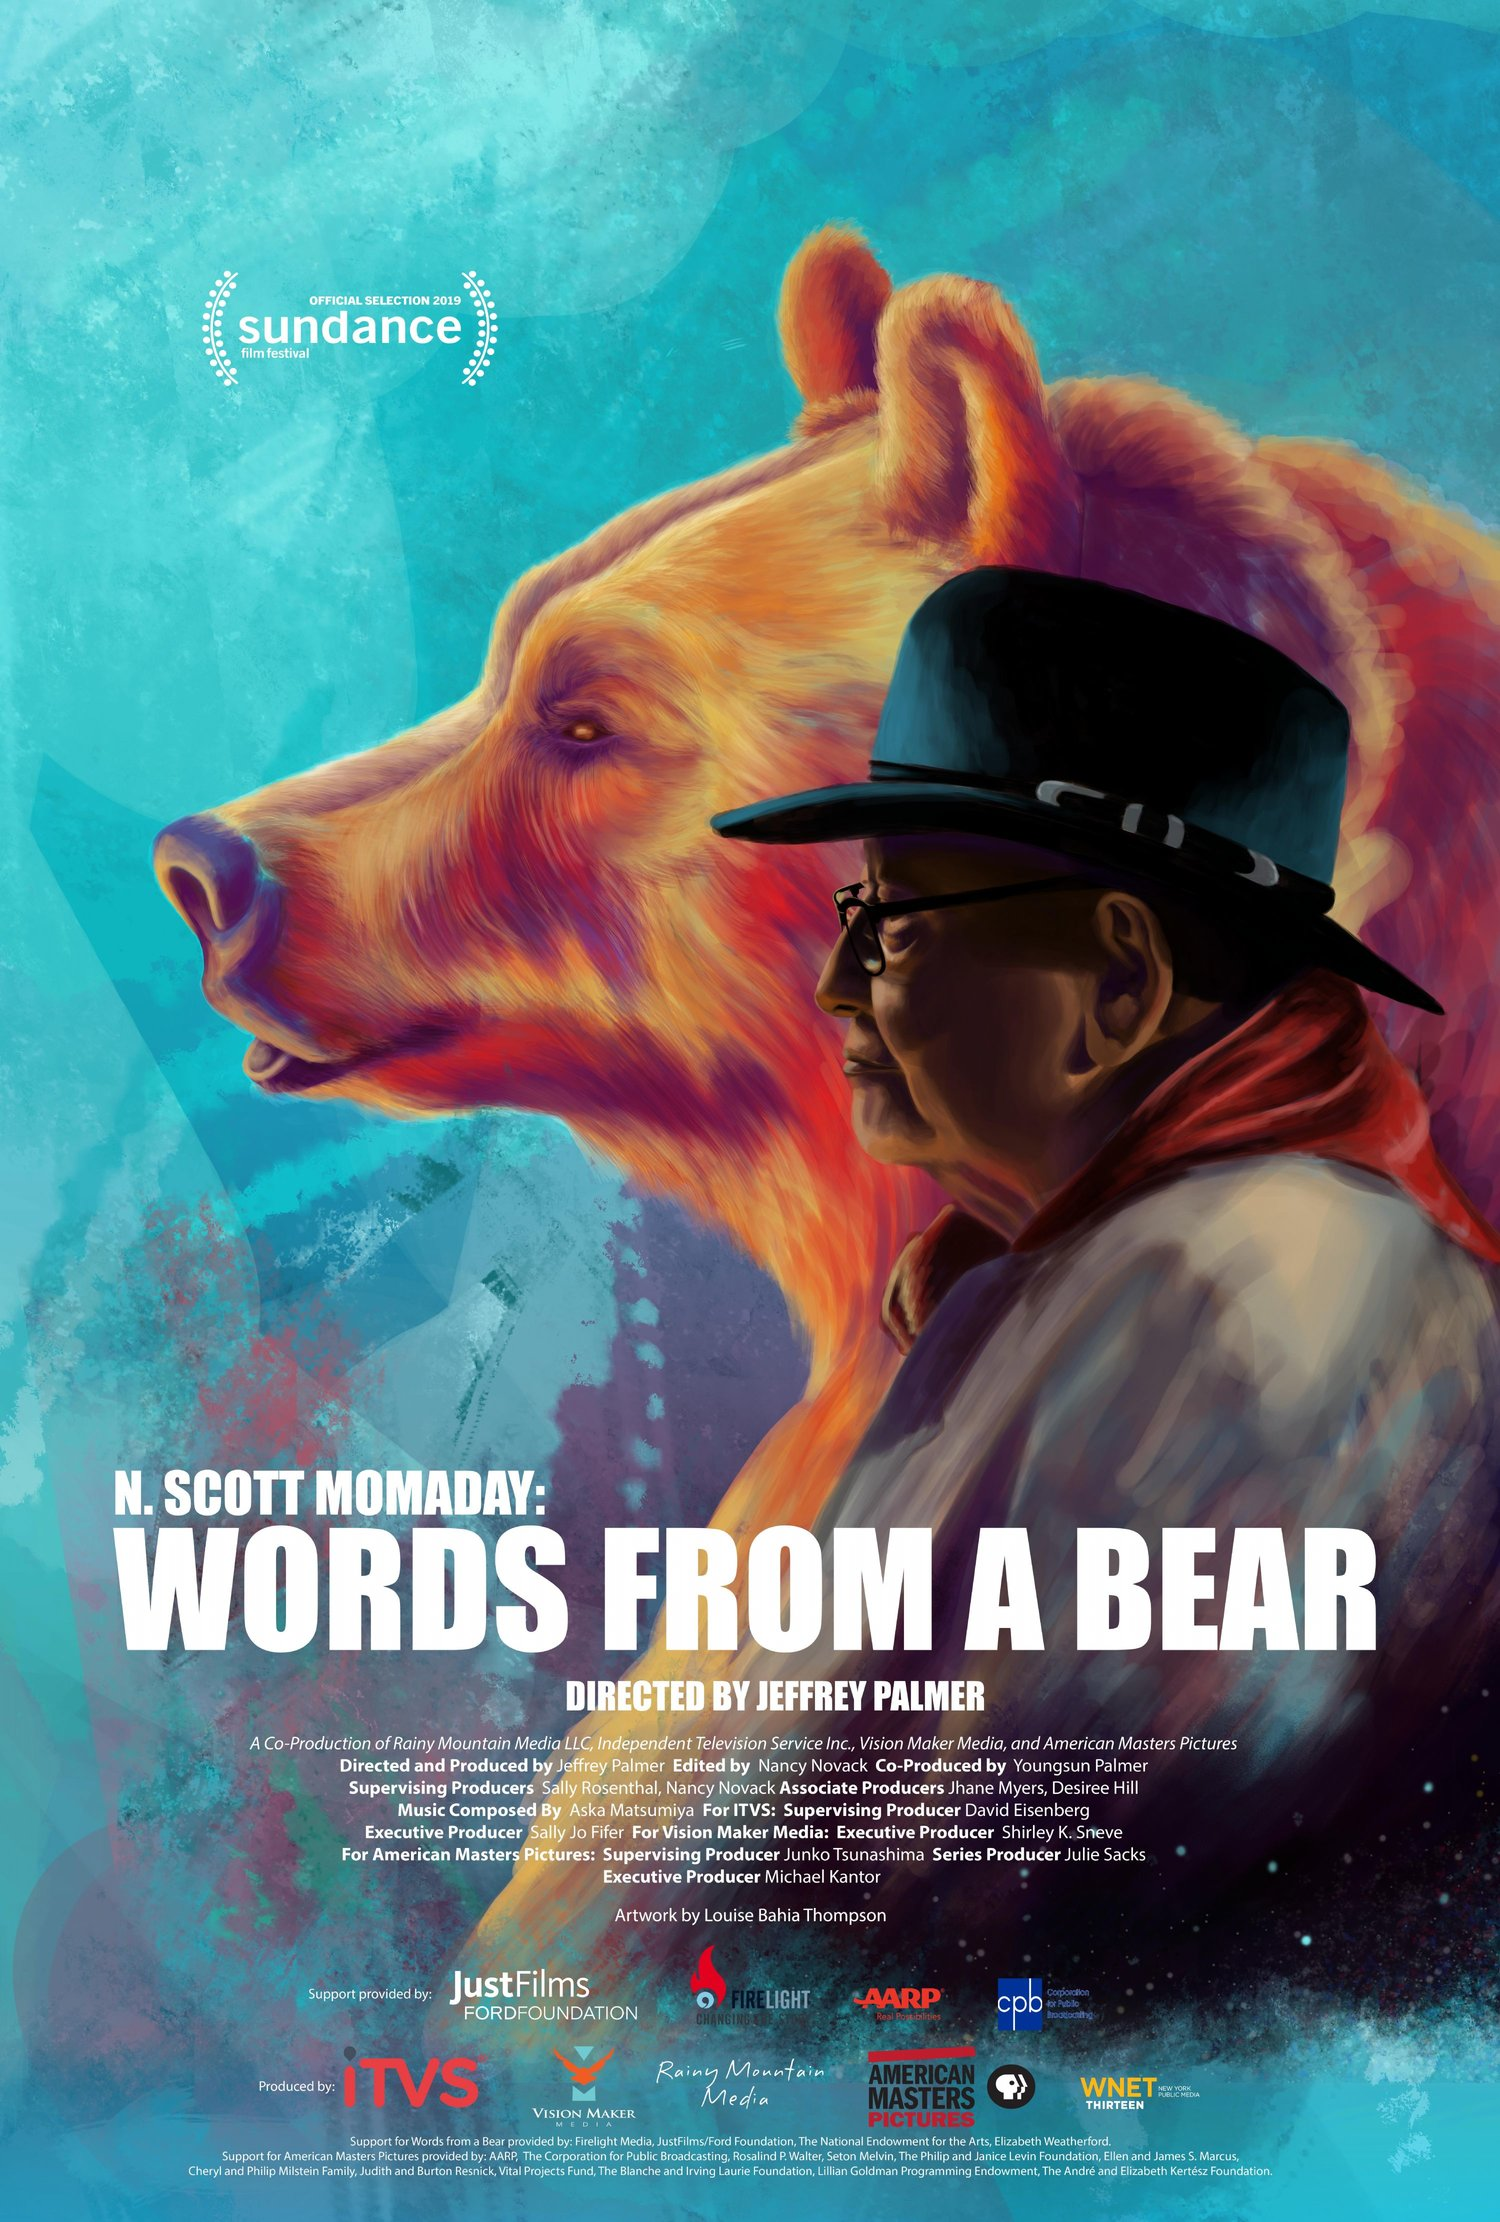 N. Scott Momaday: Words from a Bear